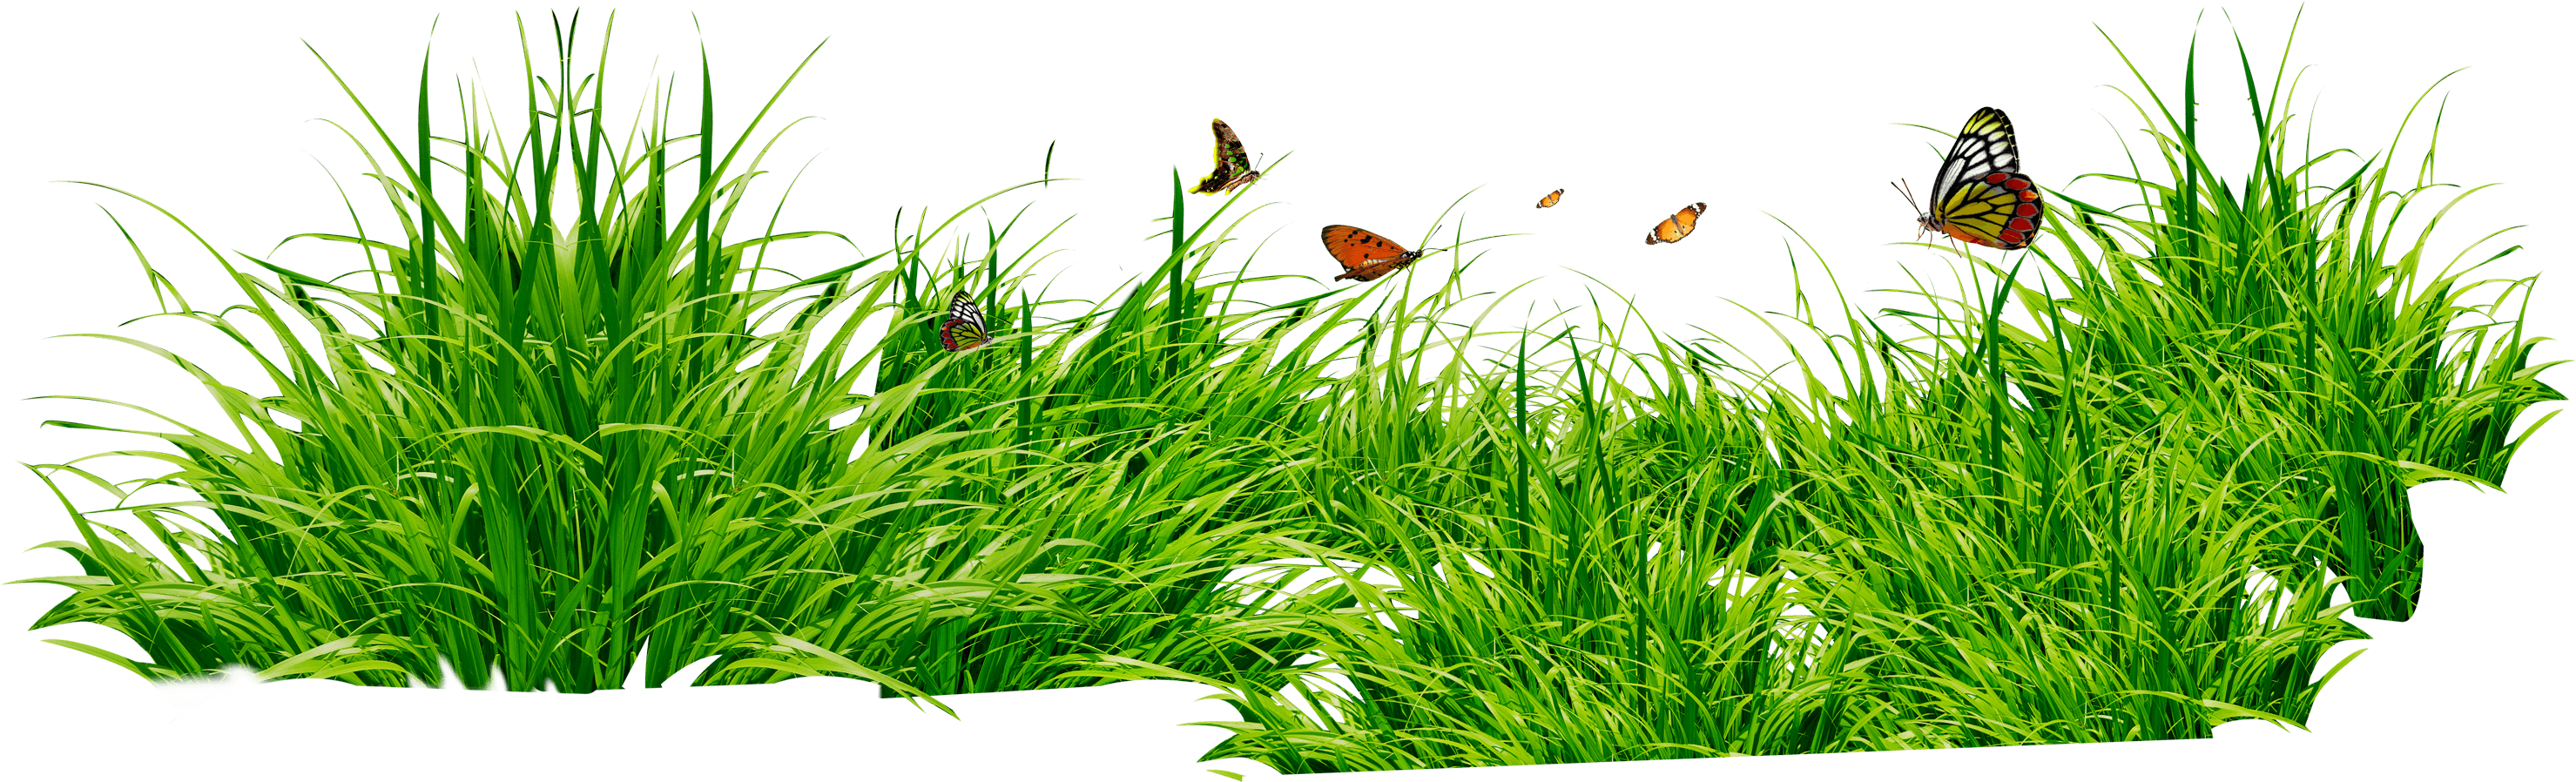 Download Grass Png Image Green Picture HQ PNG